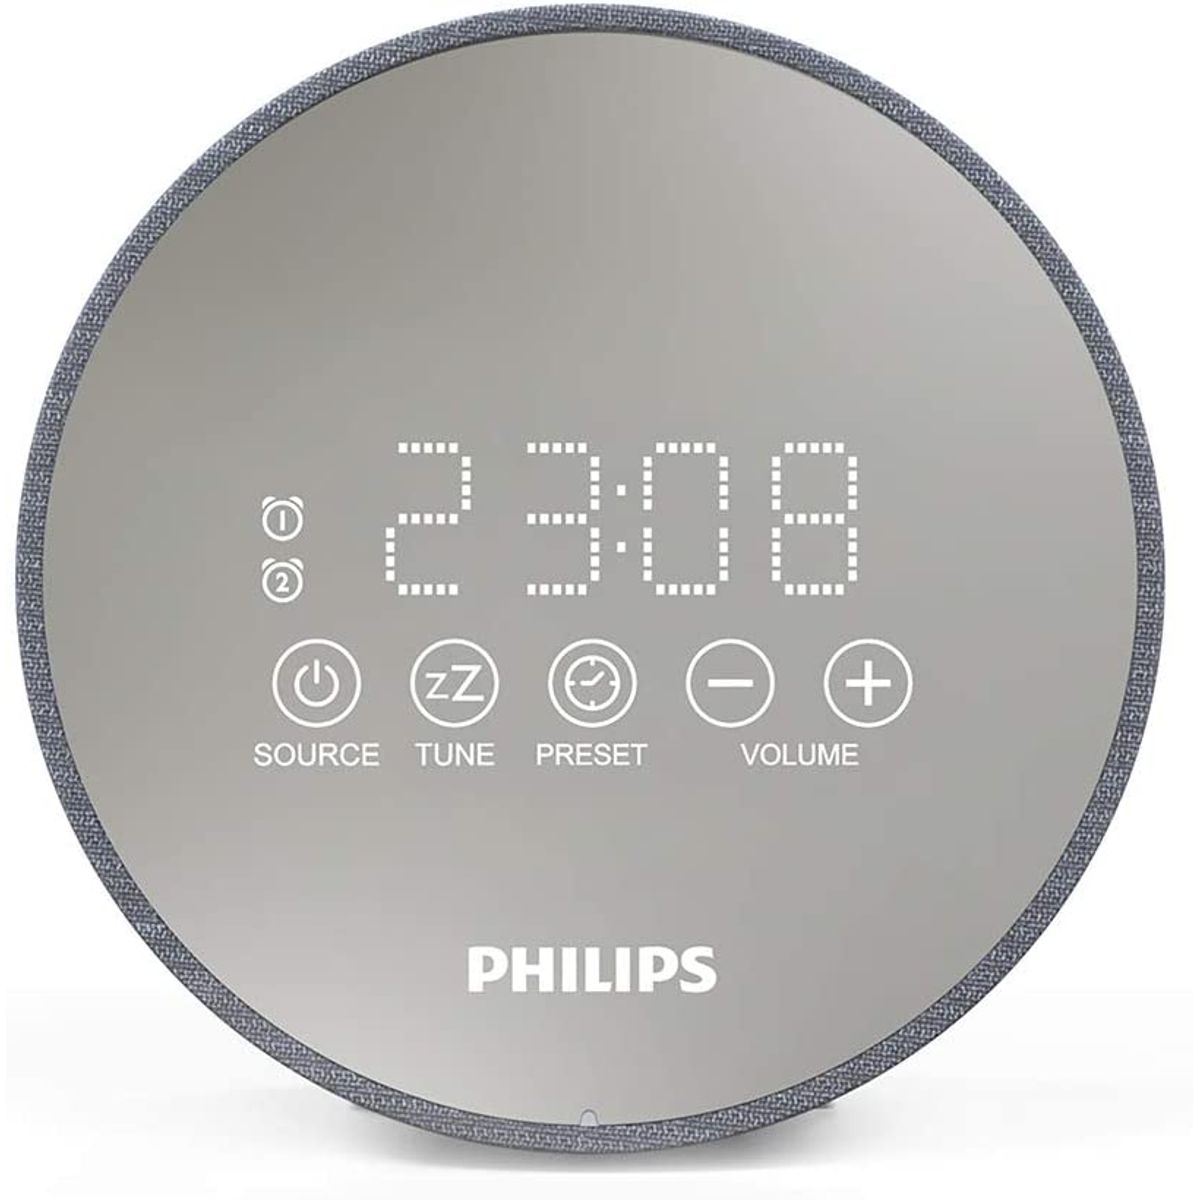 Philips Audio Radiowecker DR402-12 Digitaler Radiowecker (Sleep Timer, USB Ladefunktion, 2 Weckfunktionen)